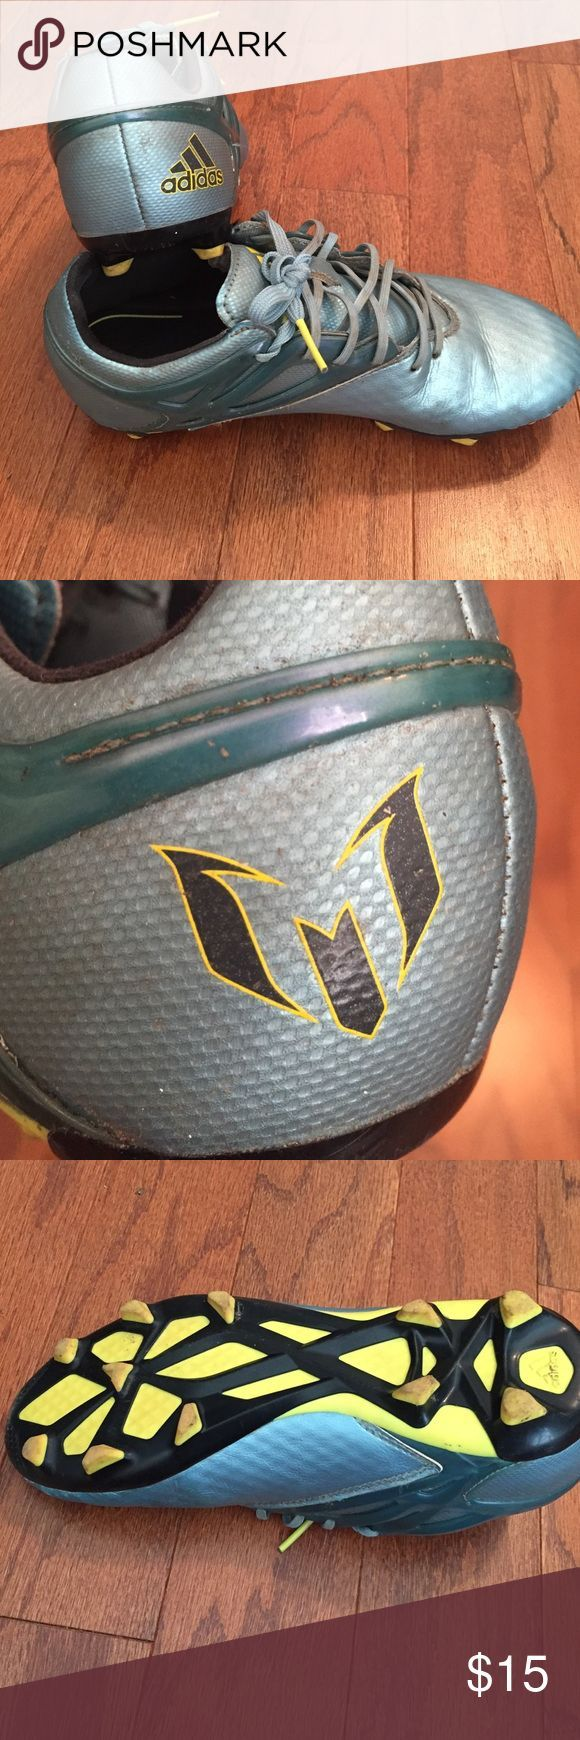 Cool Adidas Shoes Kids soccer cleats Up for sale is a pair of Adidas Messi soccer cleats. Size 3 A... Check more at http://24shopping.ga/fashion/adidas-shoes-kids-soccer-cleats-up-for-sale-is-a-pair-of-adidas-messi-soccer-cleats-size-3-a/